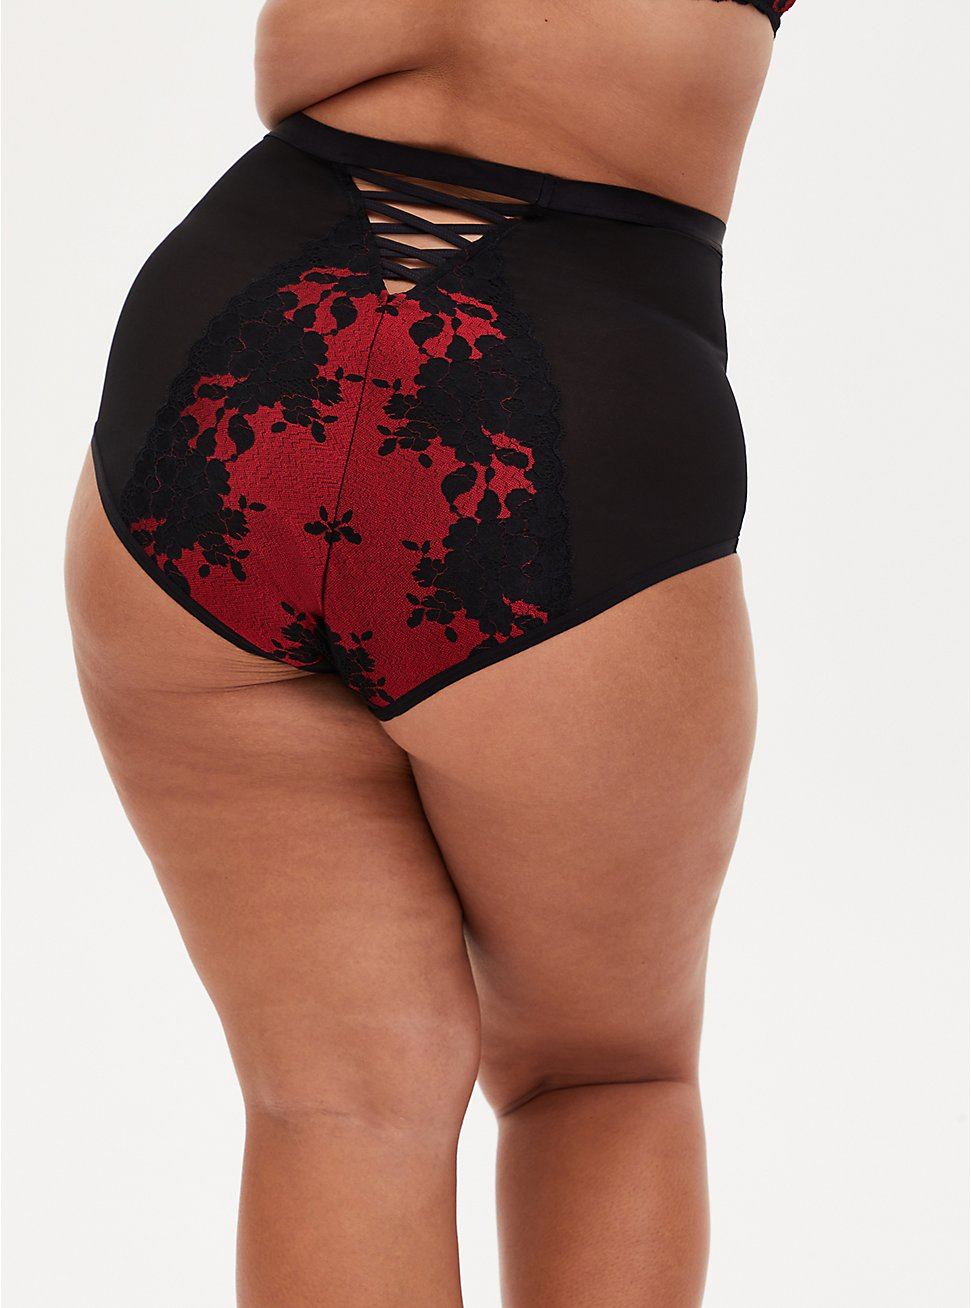 Red Lace & Black Mesh High Waist Panty , JESTER RED WITH BLACK, hi-res